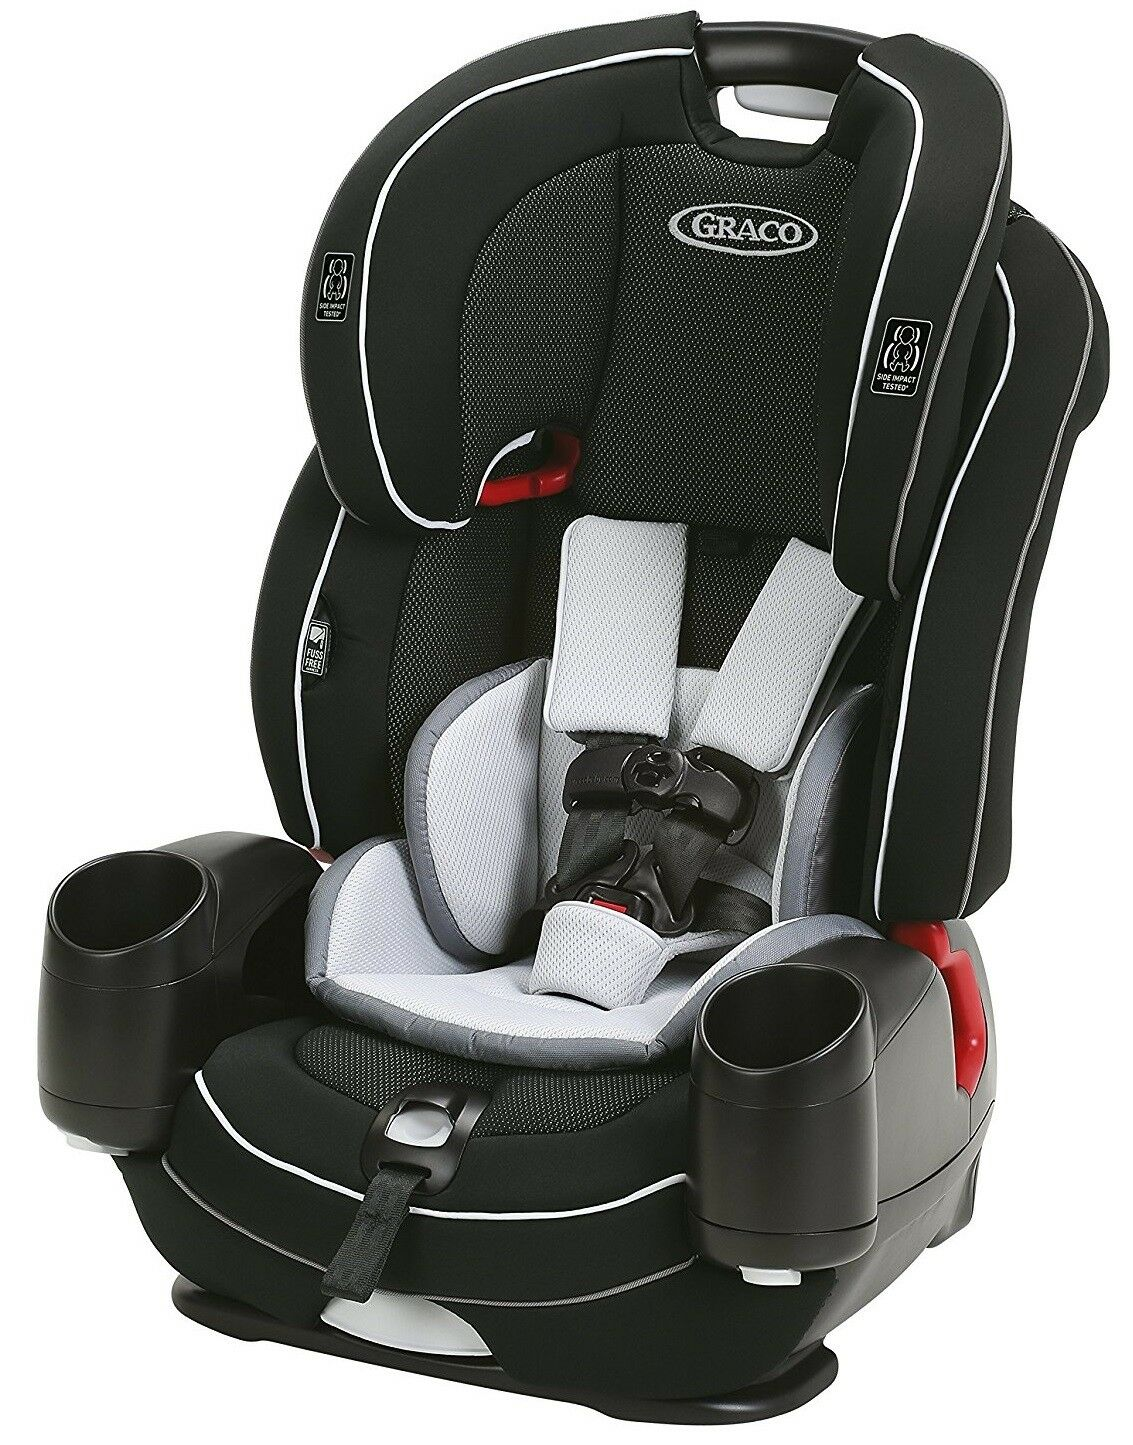 ba61fc9bf3f ... Booster Car Seat Codey NEW 2018 Graco Baby Nautilus Snug LX 3-in-1  Harness Booster Car Seat Codey NEW 2018 Graco Baby Nautilus Snug LX 3-in-1  Harness ...